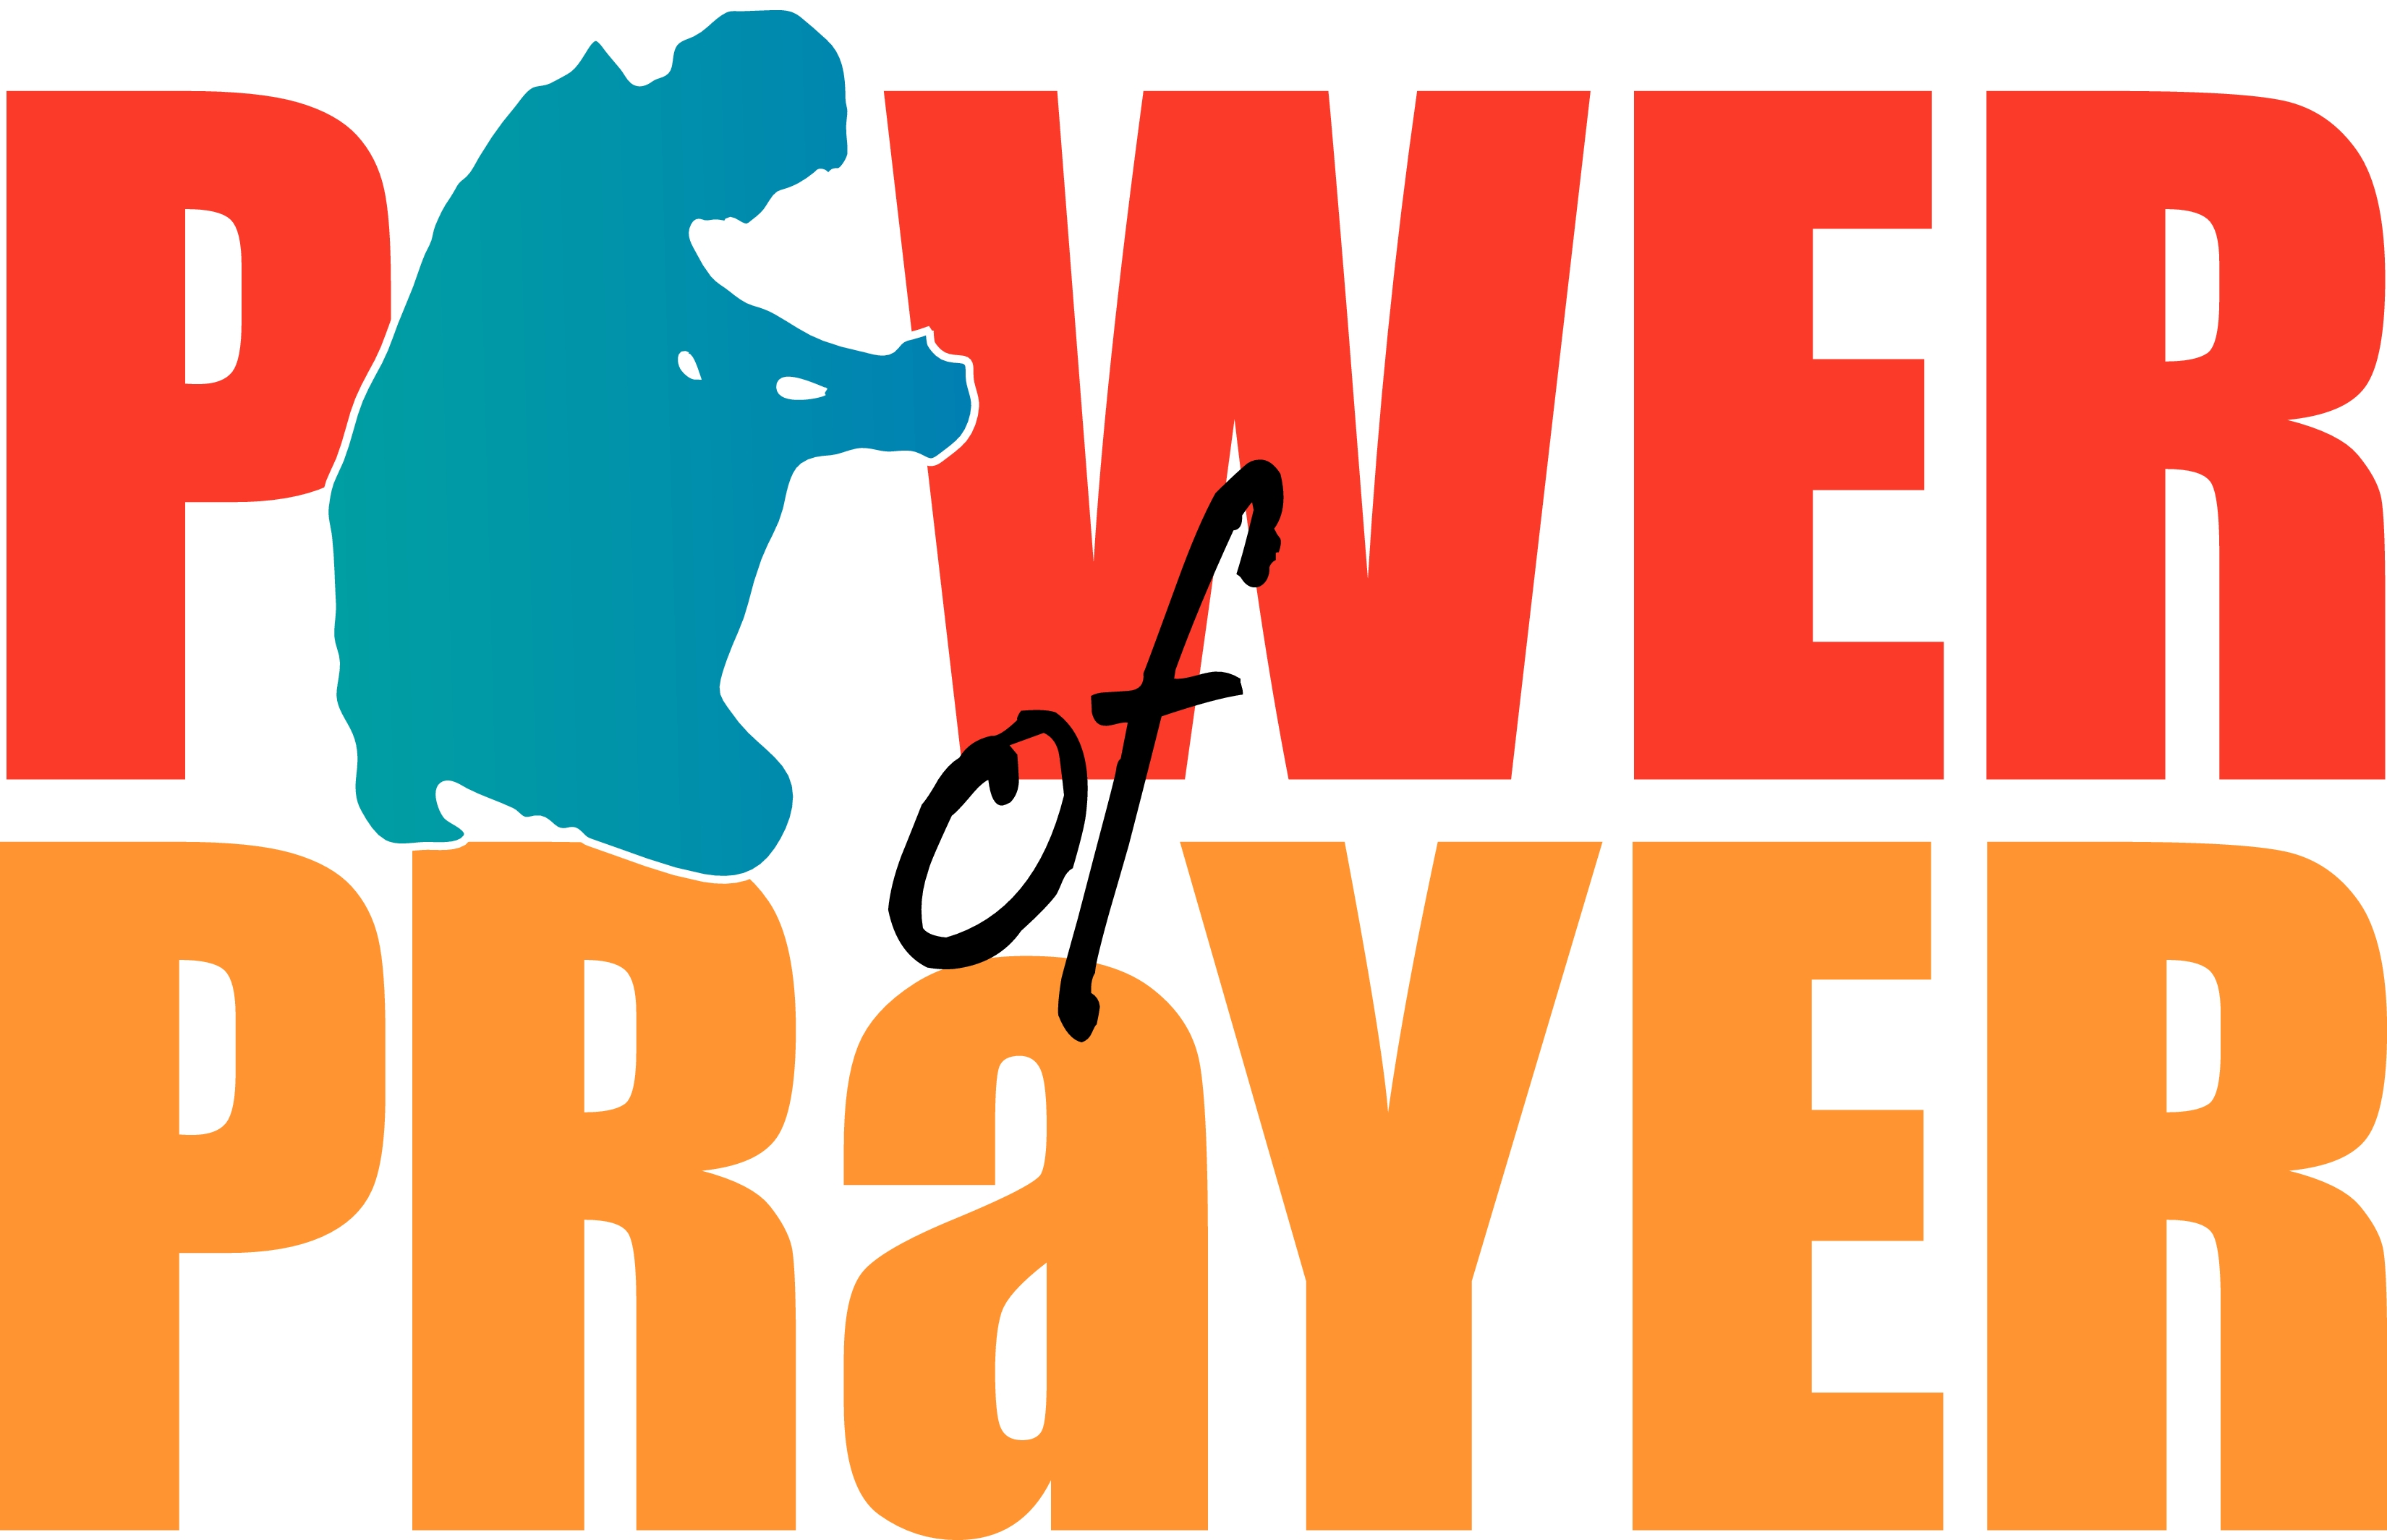 Prayer Requests Clipart Images.